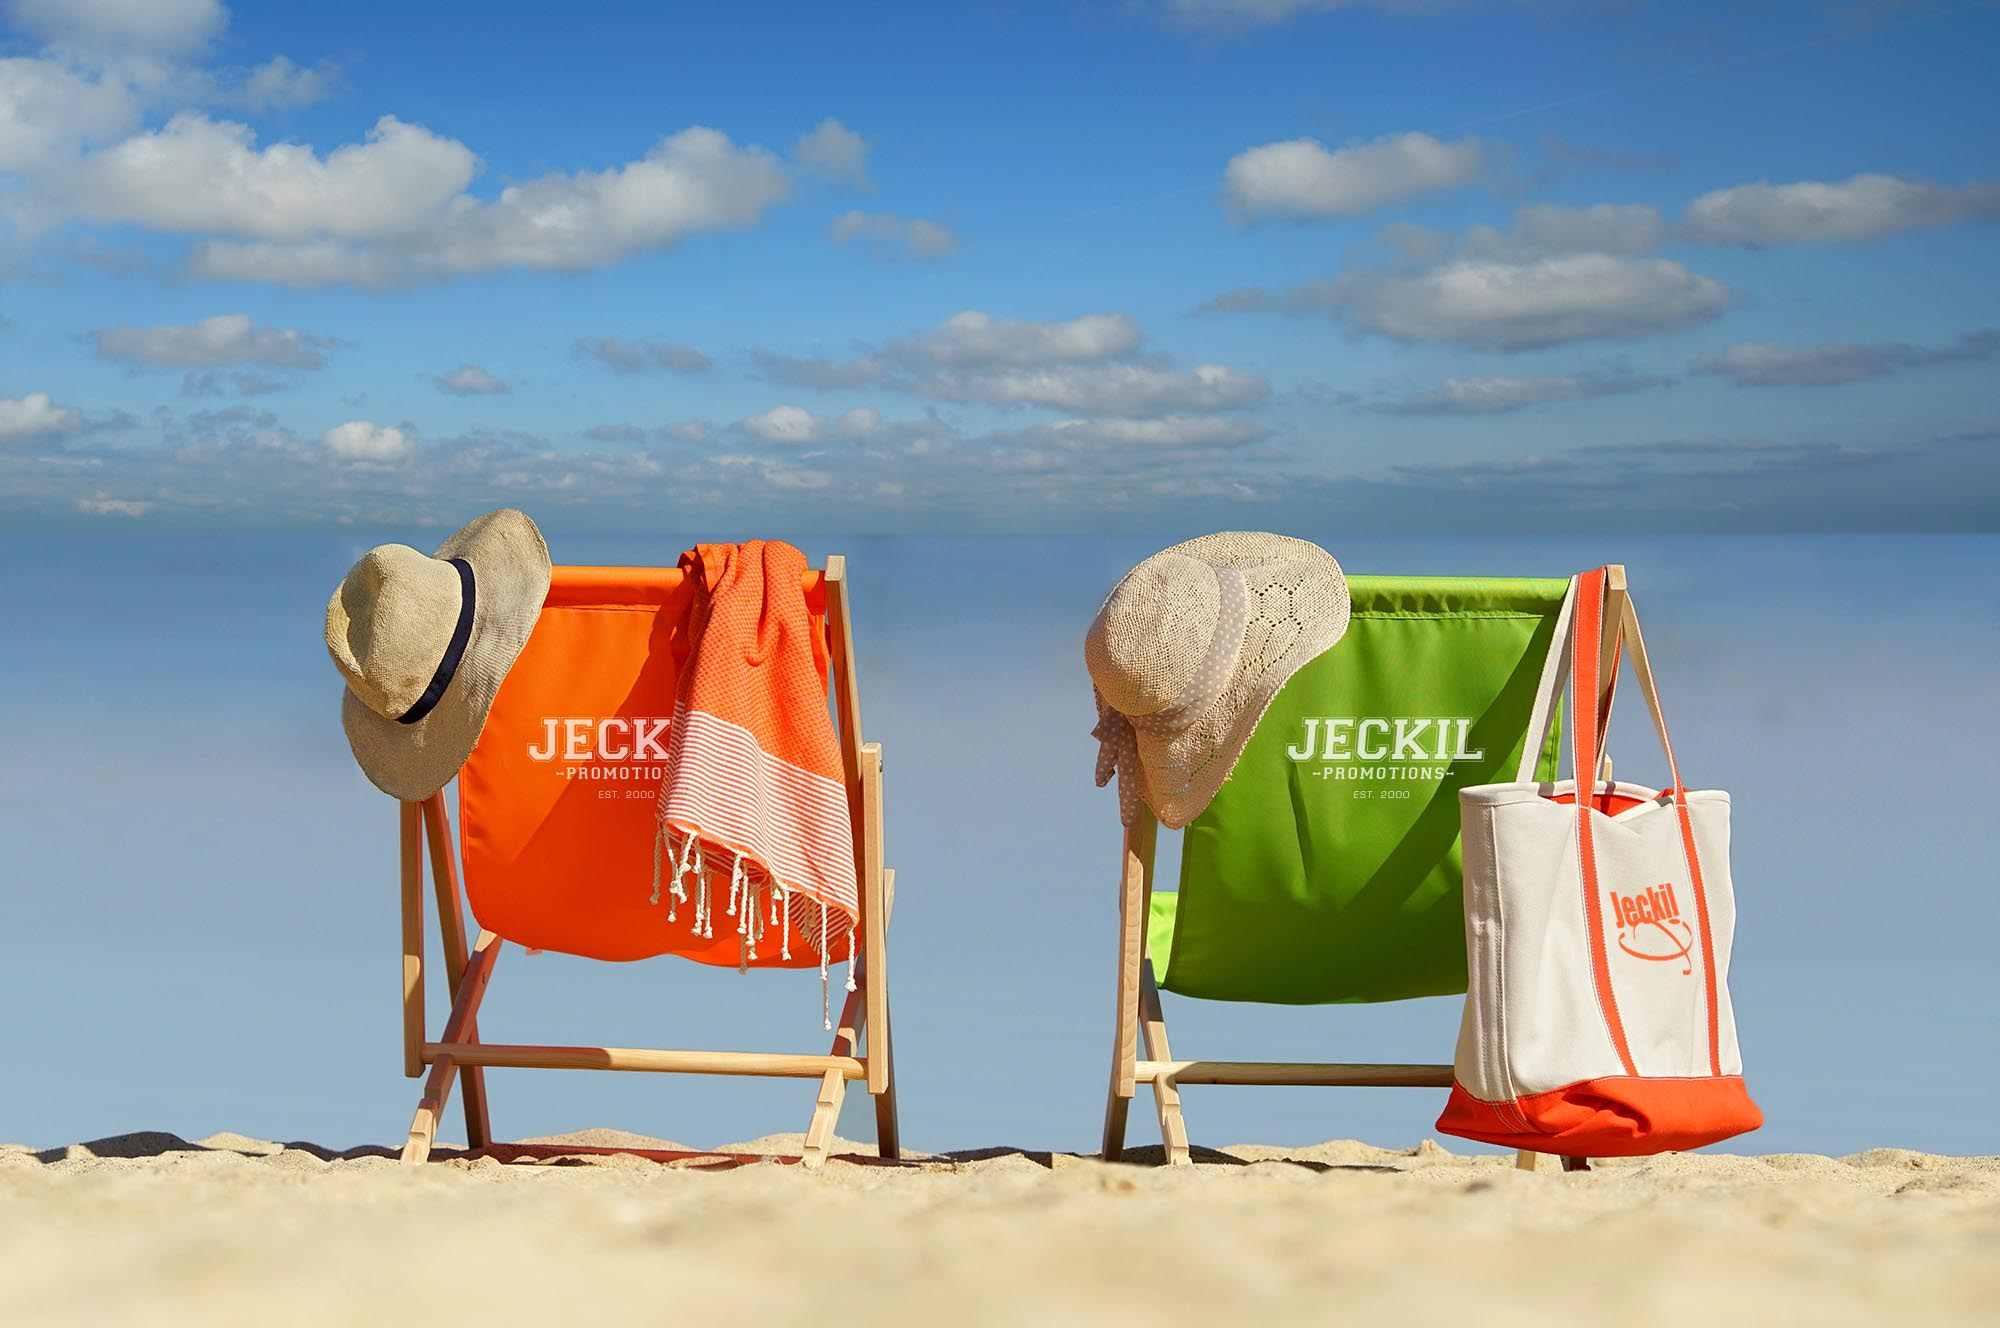 beautiful beach with deck chairs in the sand - holiday relax concept